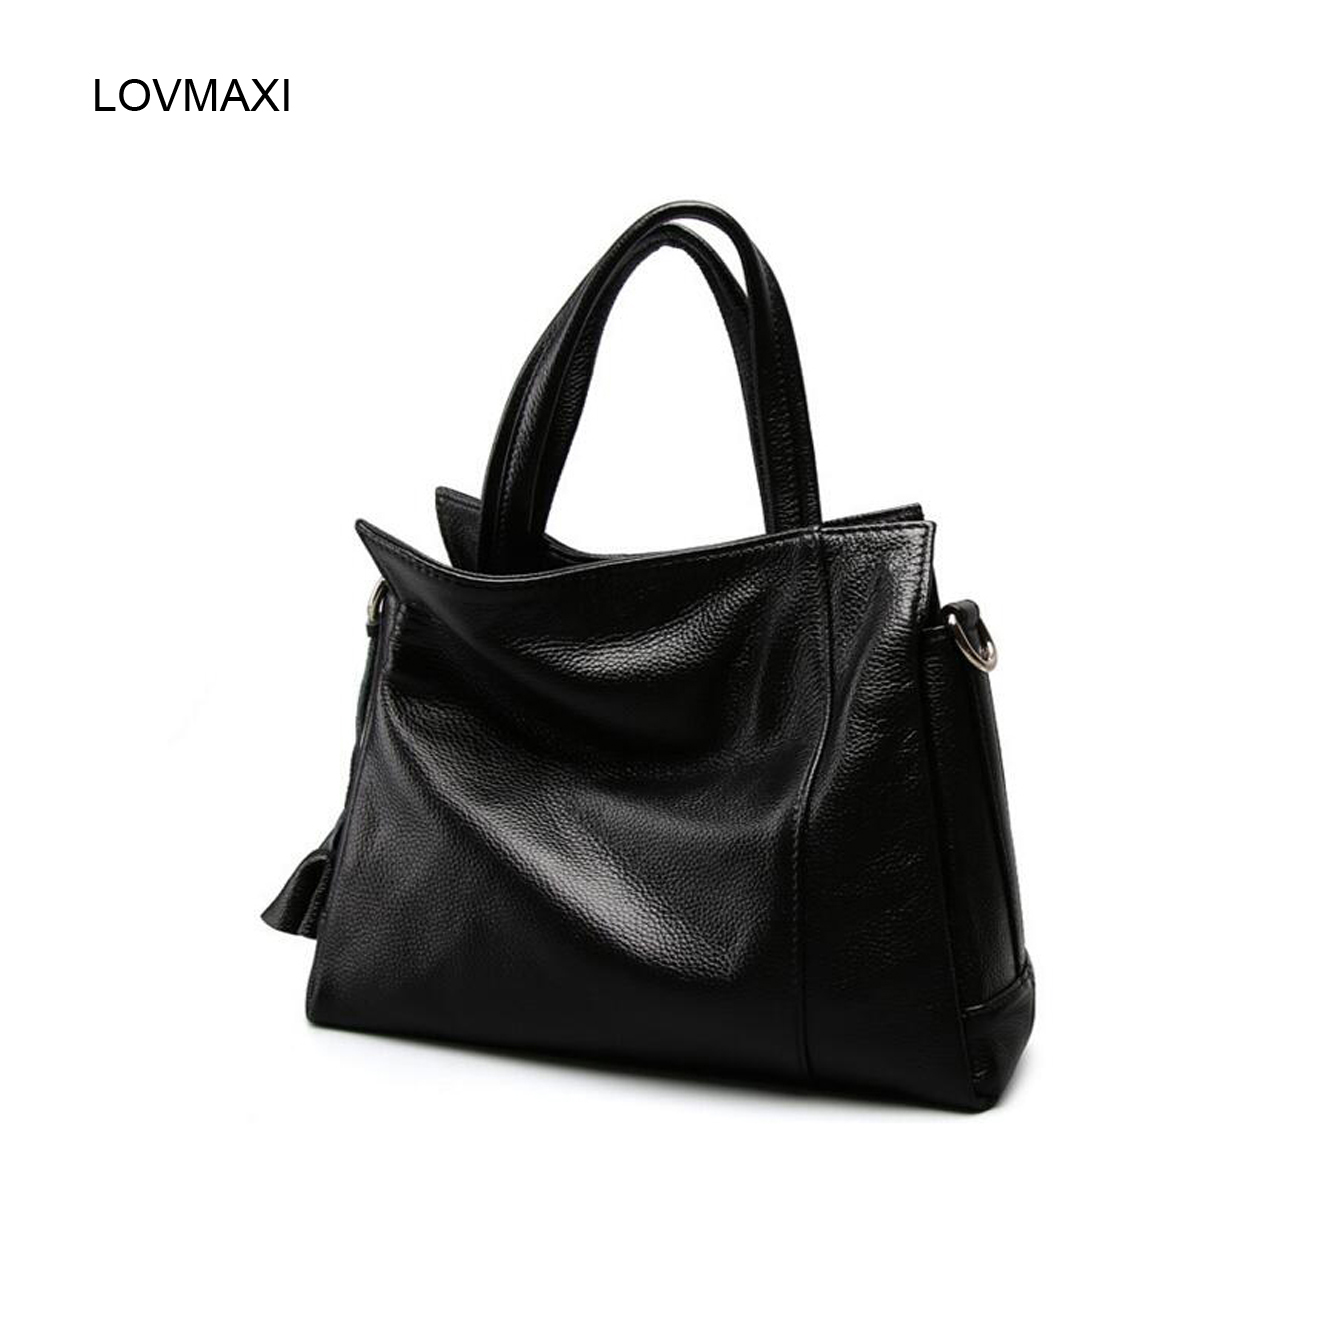 ФОТО 2017 Hot genuine leather Women's handbags women large tote bags flower tassel Casual messenger bags Female shoulder bags